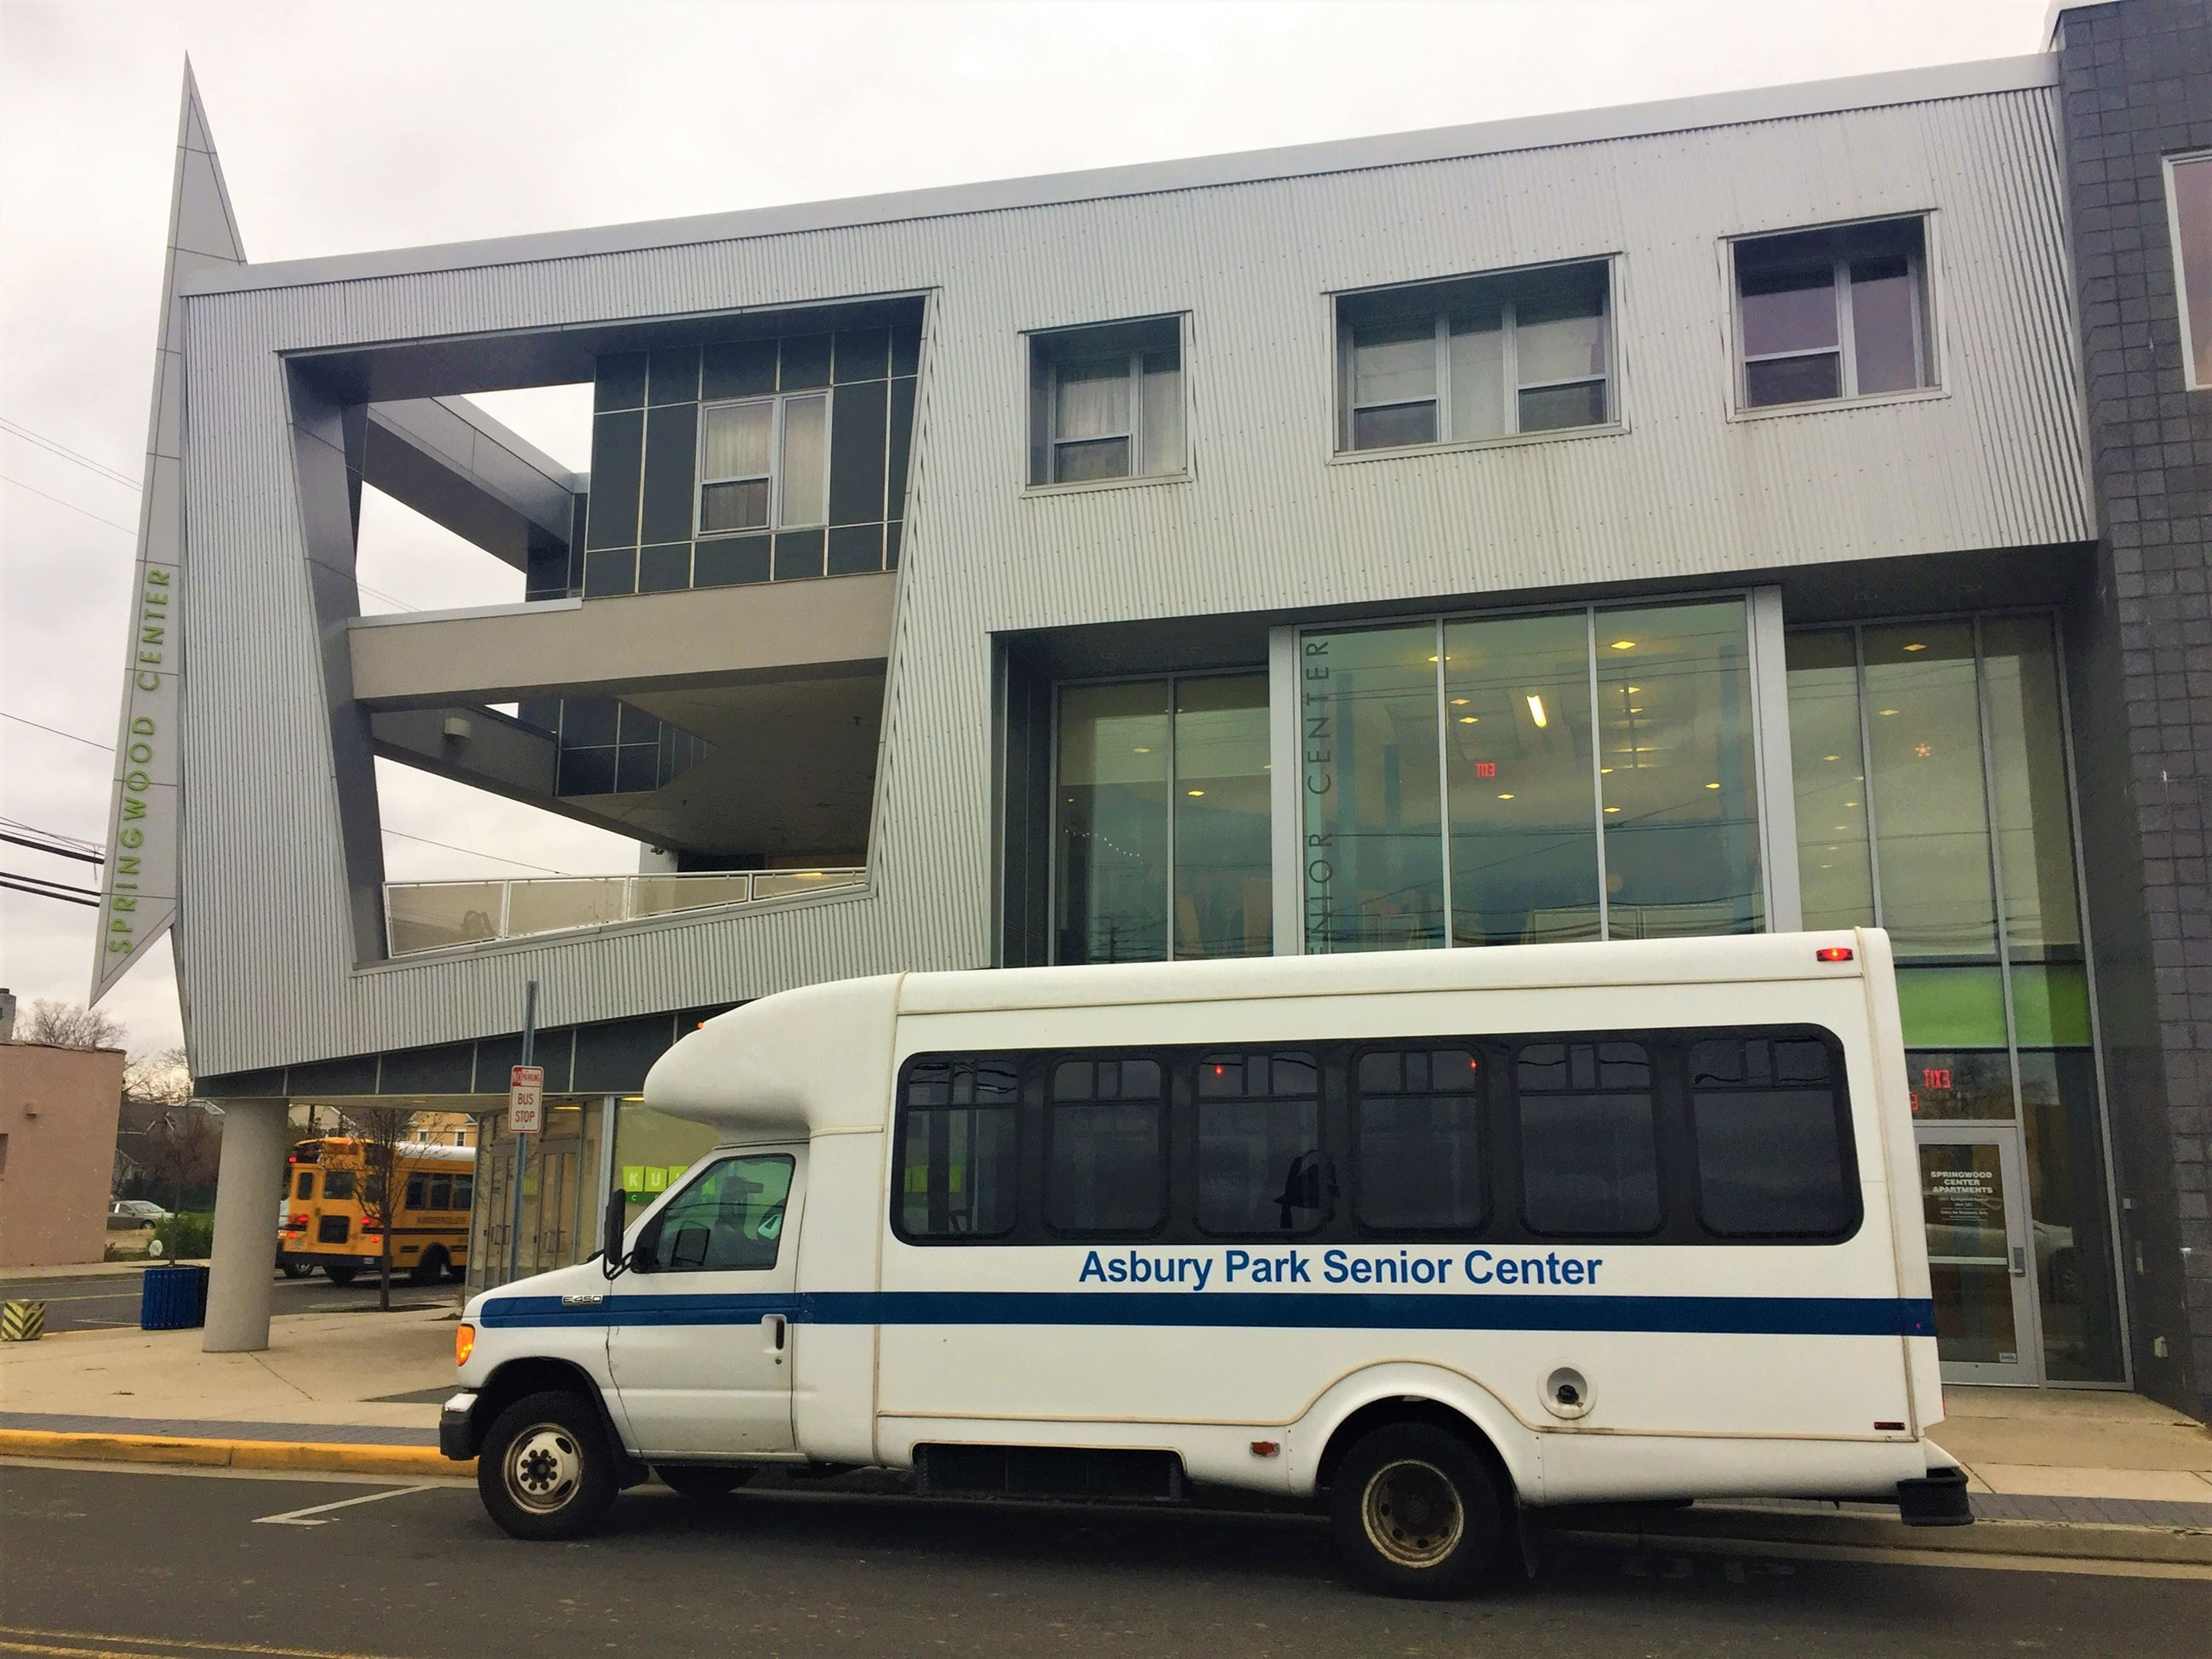 Asbury Park Senior Center building and vehicle